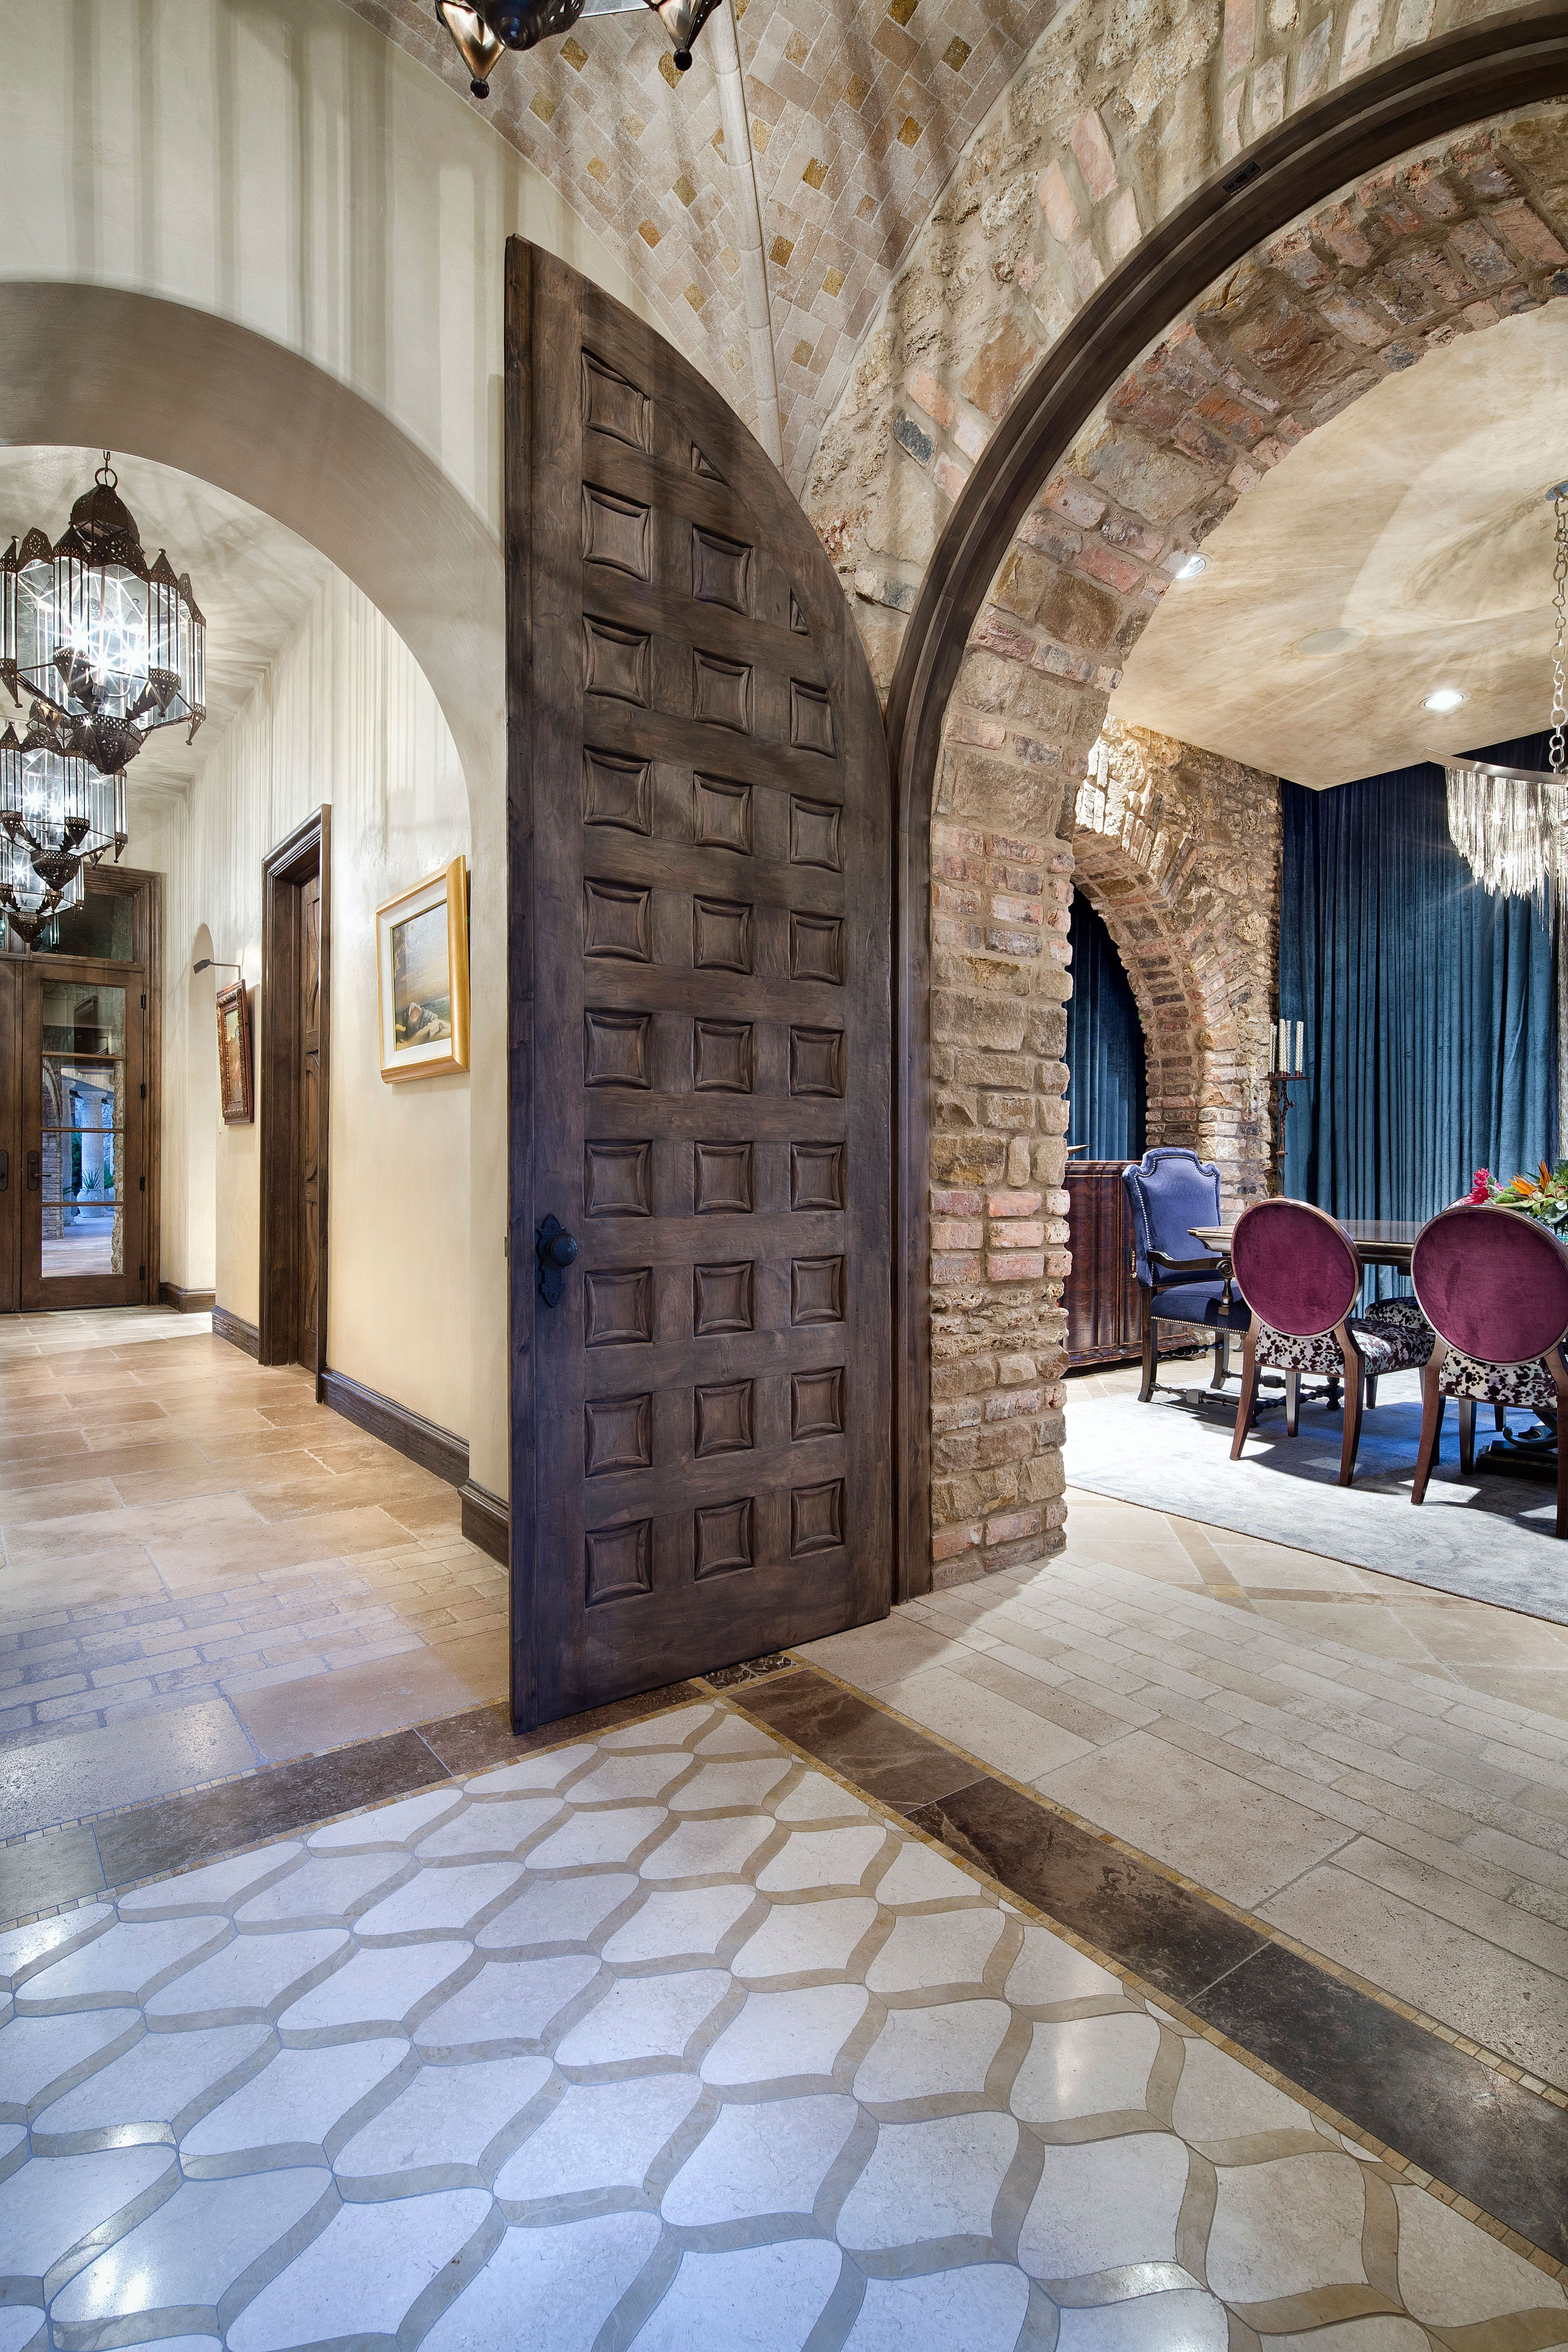 Luxury Home Interior Design: Jauregui Architects, Interiors & Construction: Portfolio